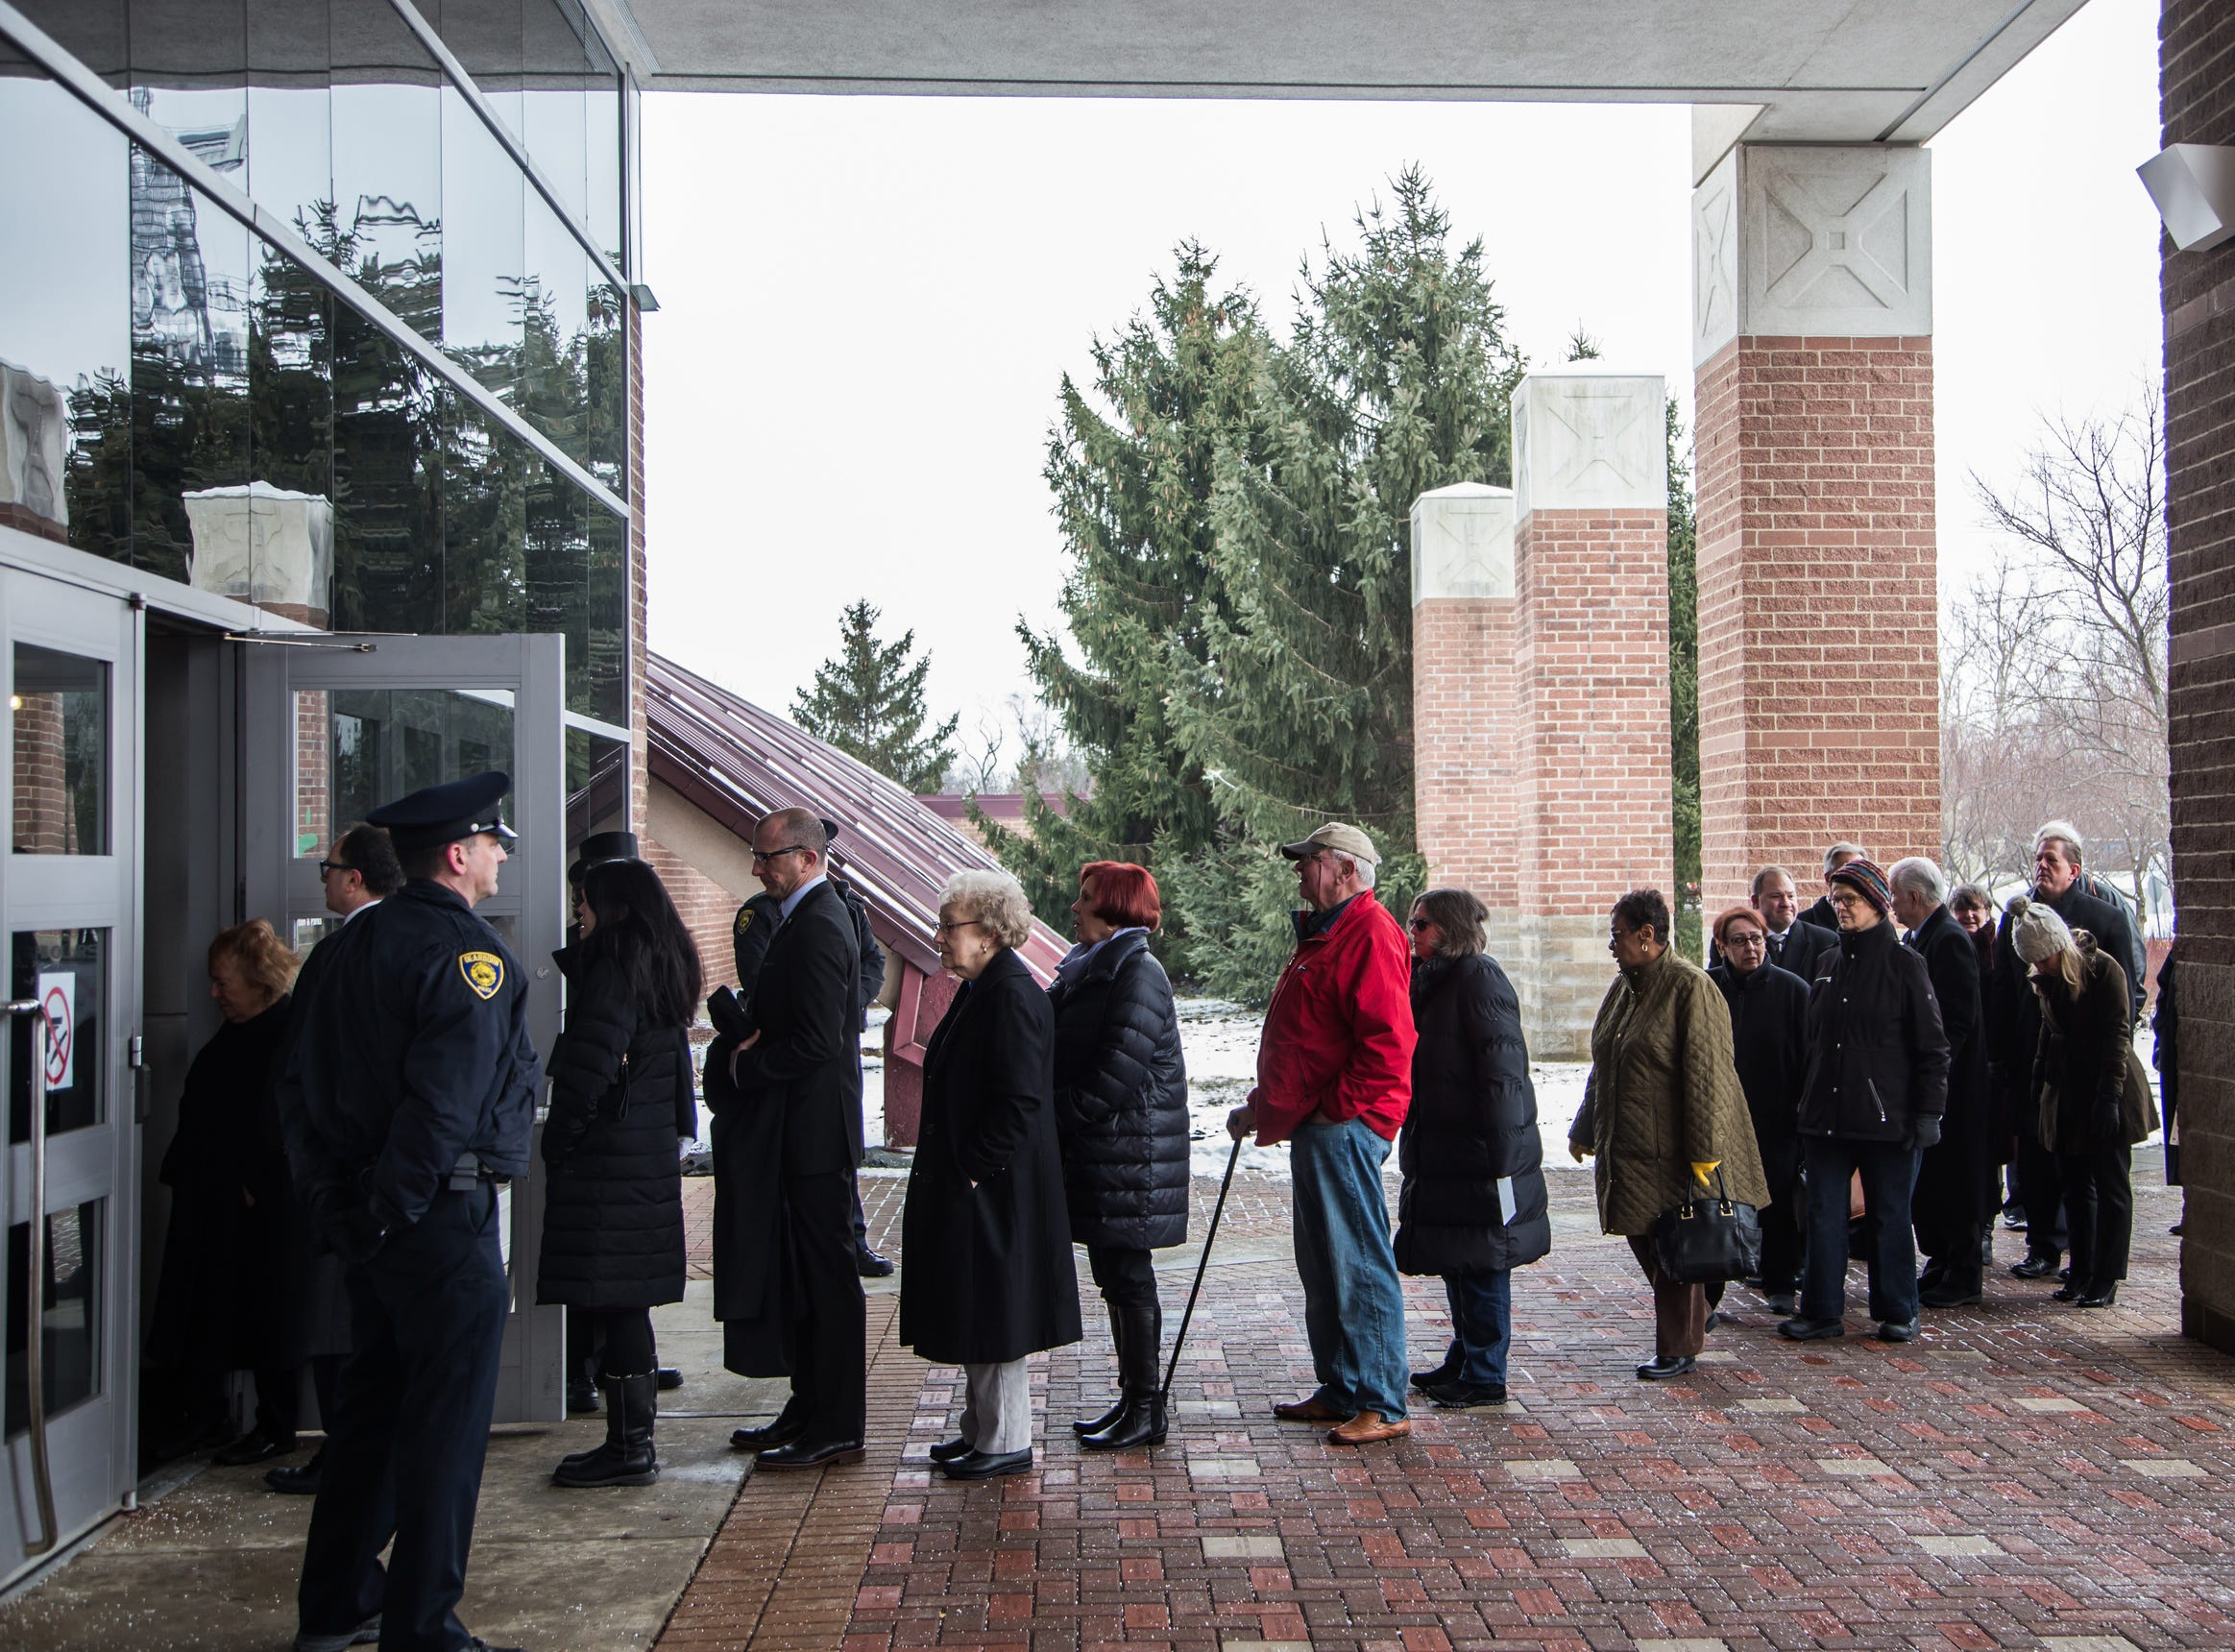 People gather to pay their respects during the visitation for the former US Representative John D. Dingell at the Ford Community and Performing Arts Center in Dearborn on Monday, February 11, 2019.